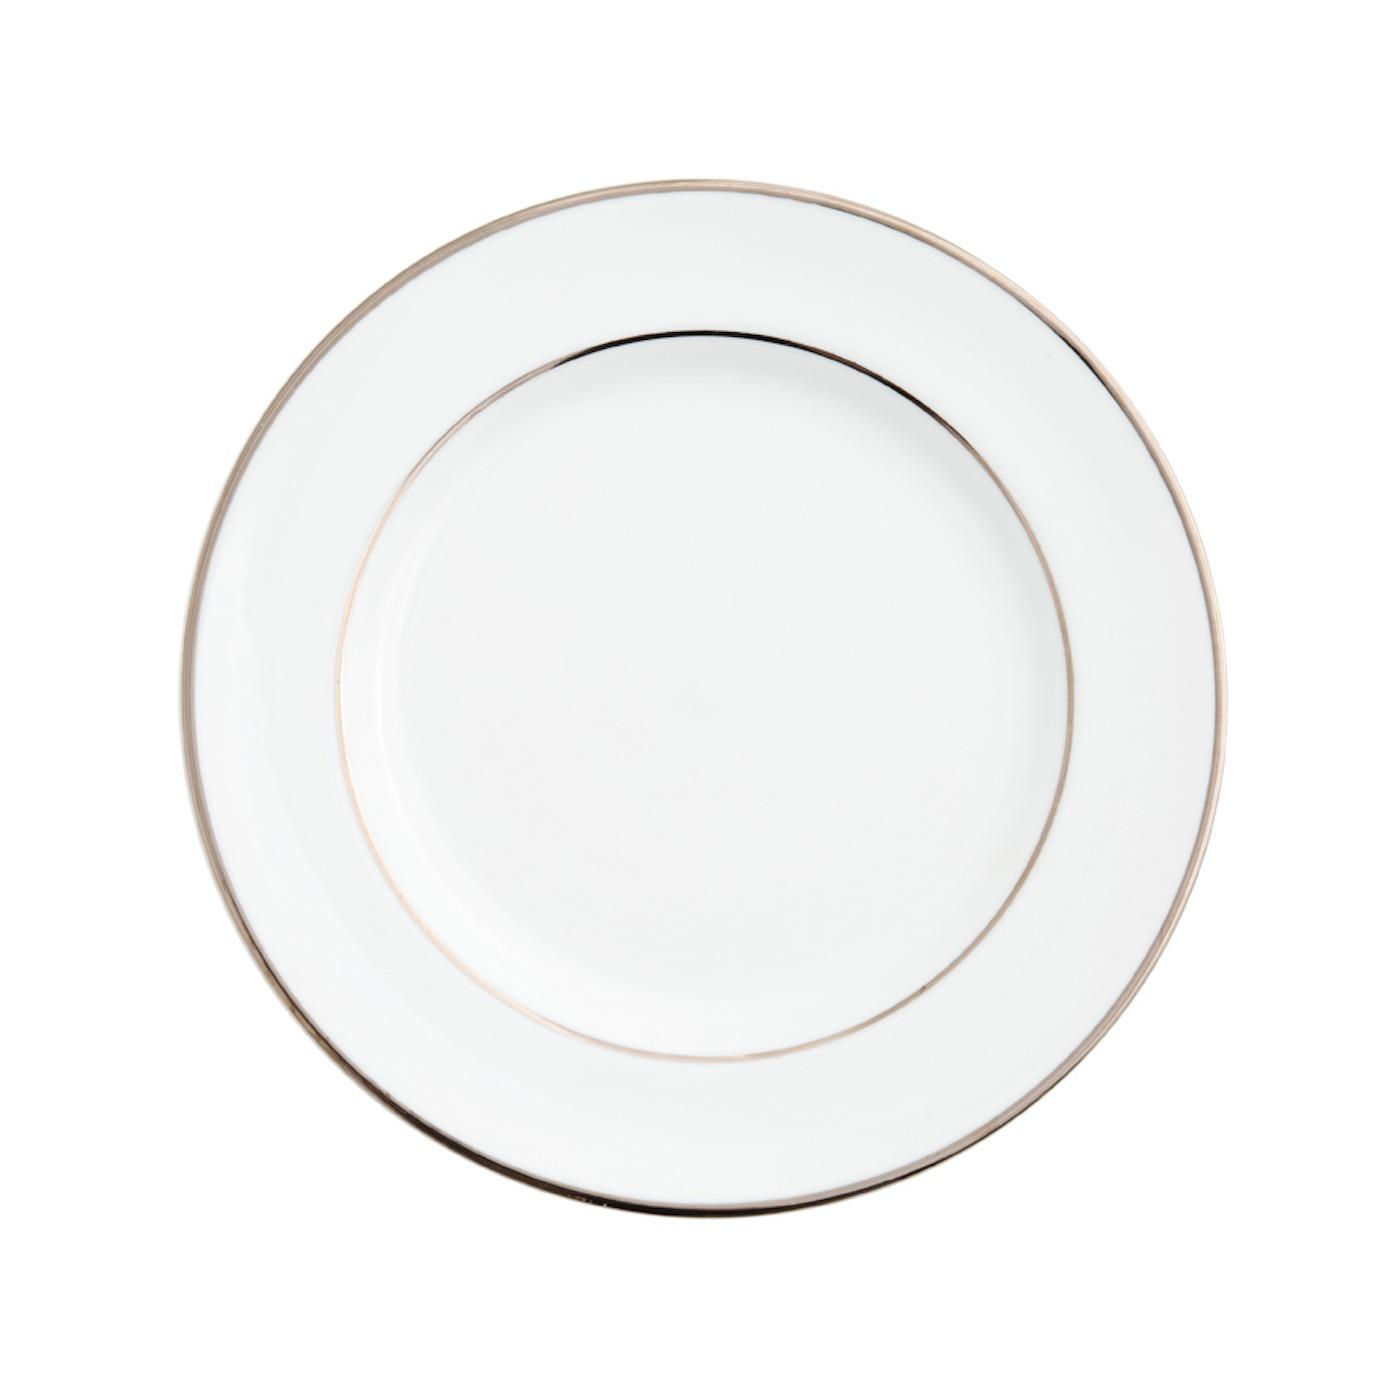 Platinum Band Collection -  Dessert Plate 7.5""